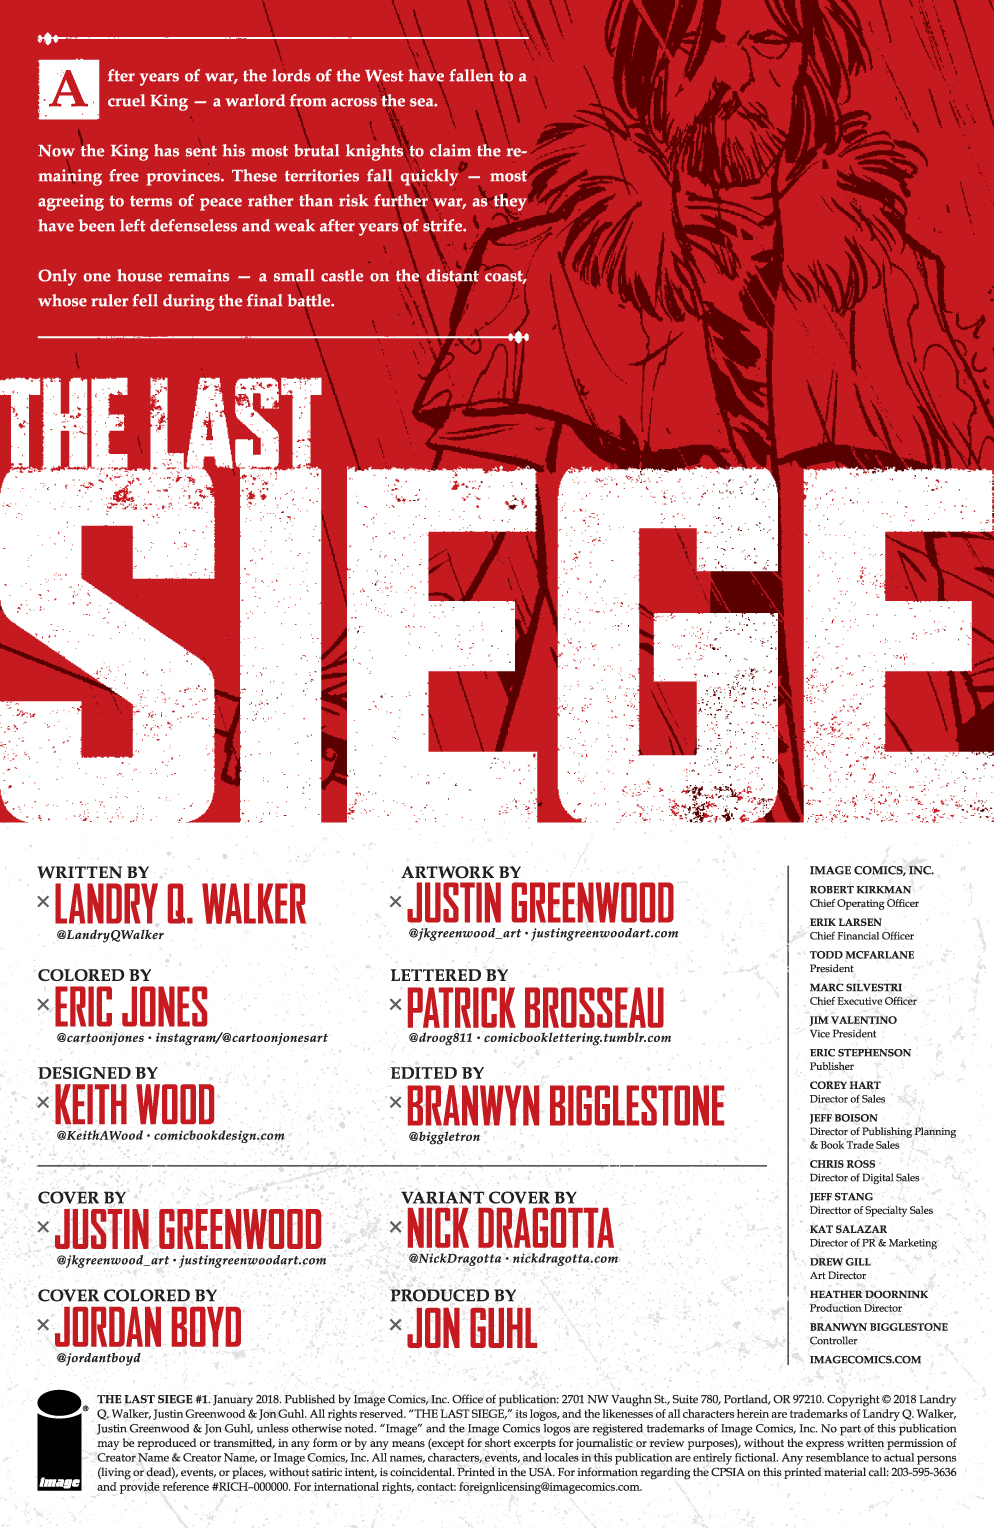 THE LAST SIEGE #1 PG 01-26 PREVIEW-2.jpg